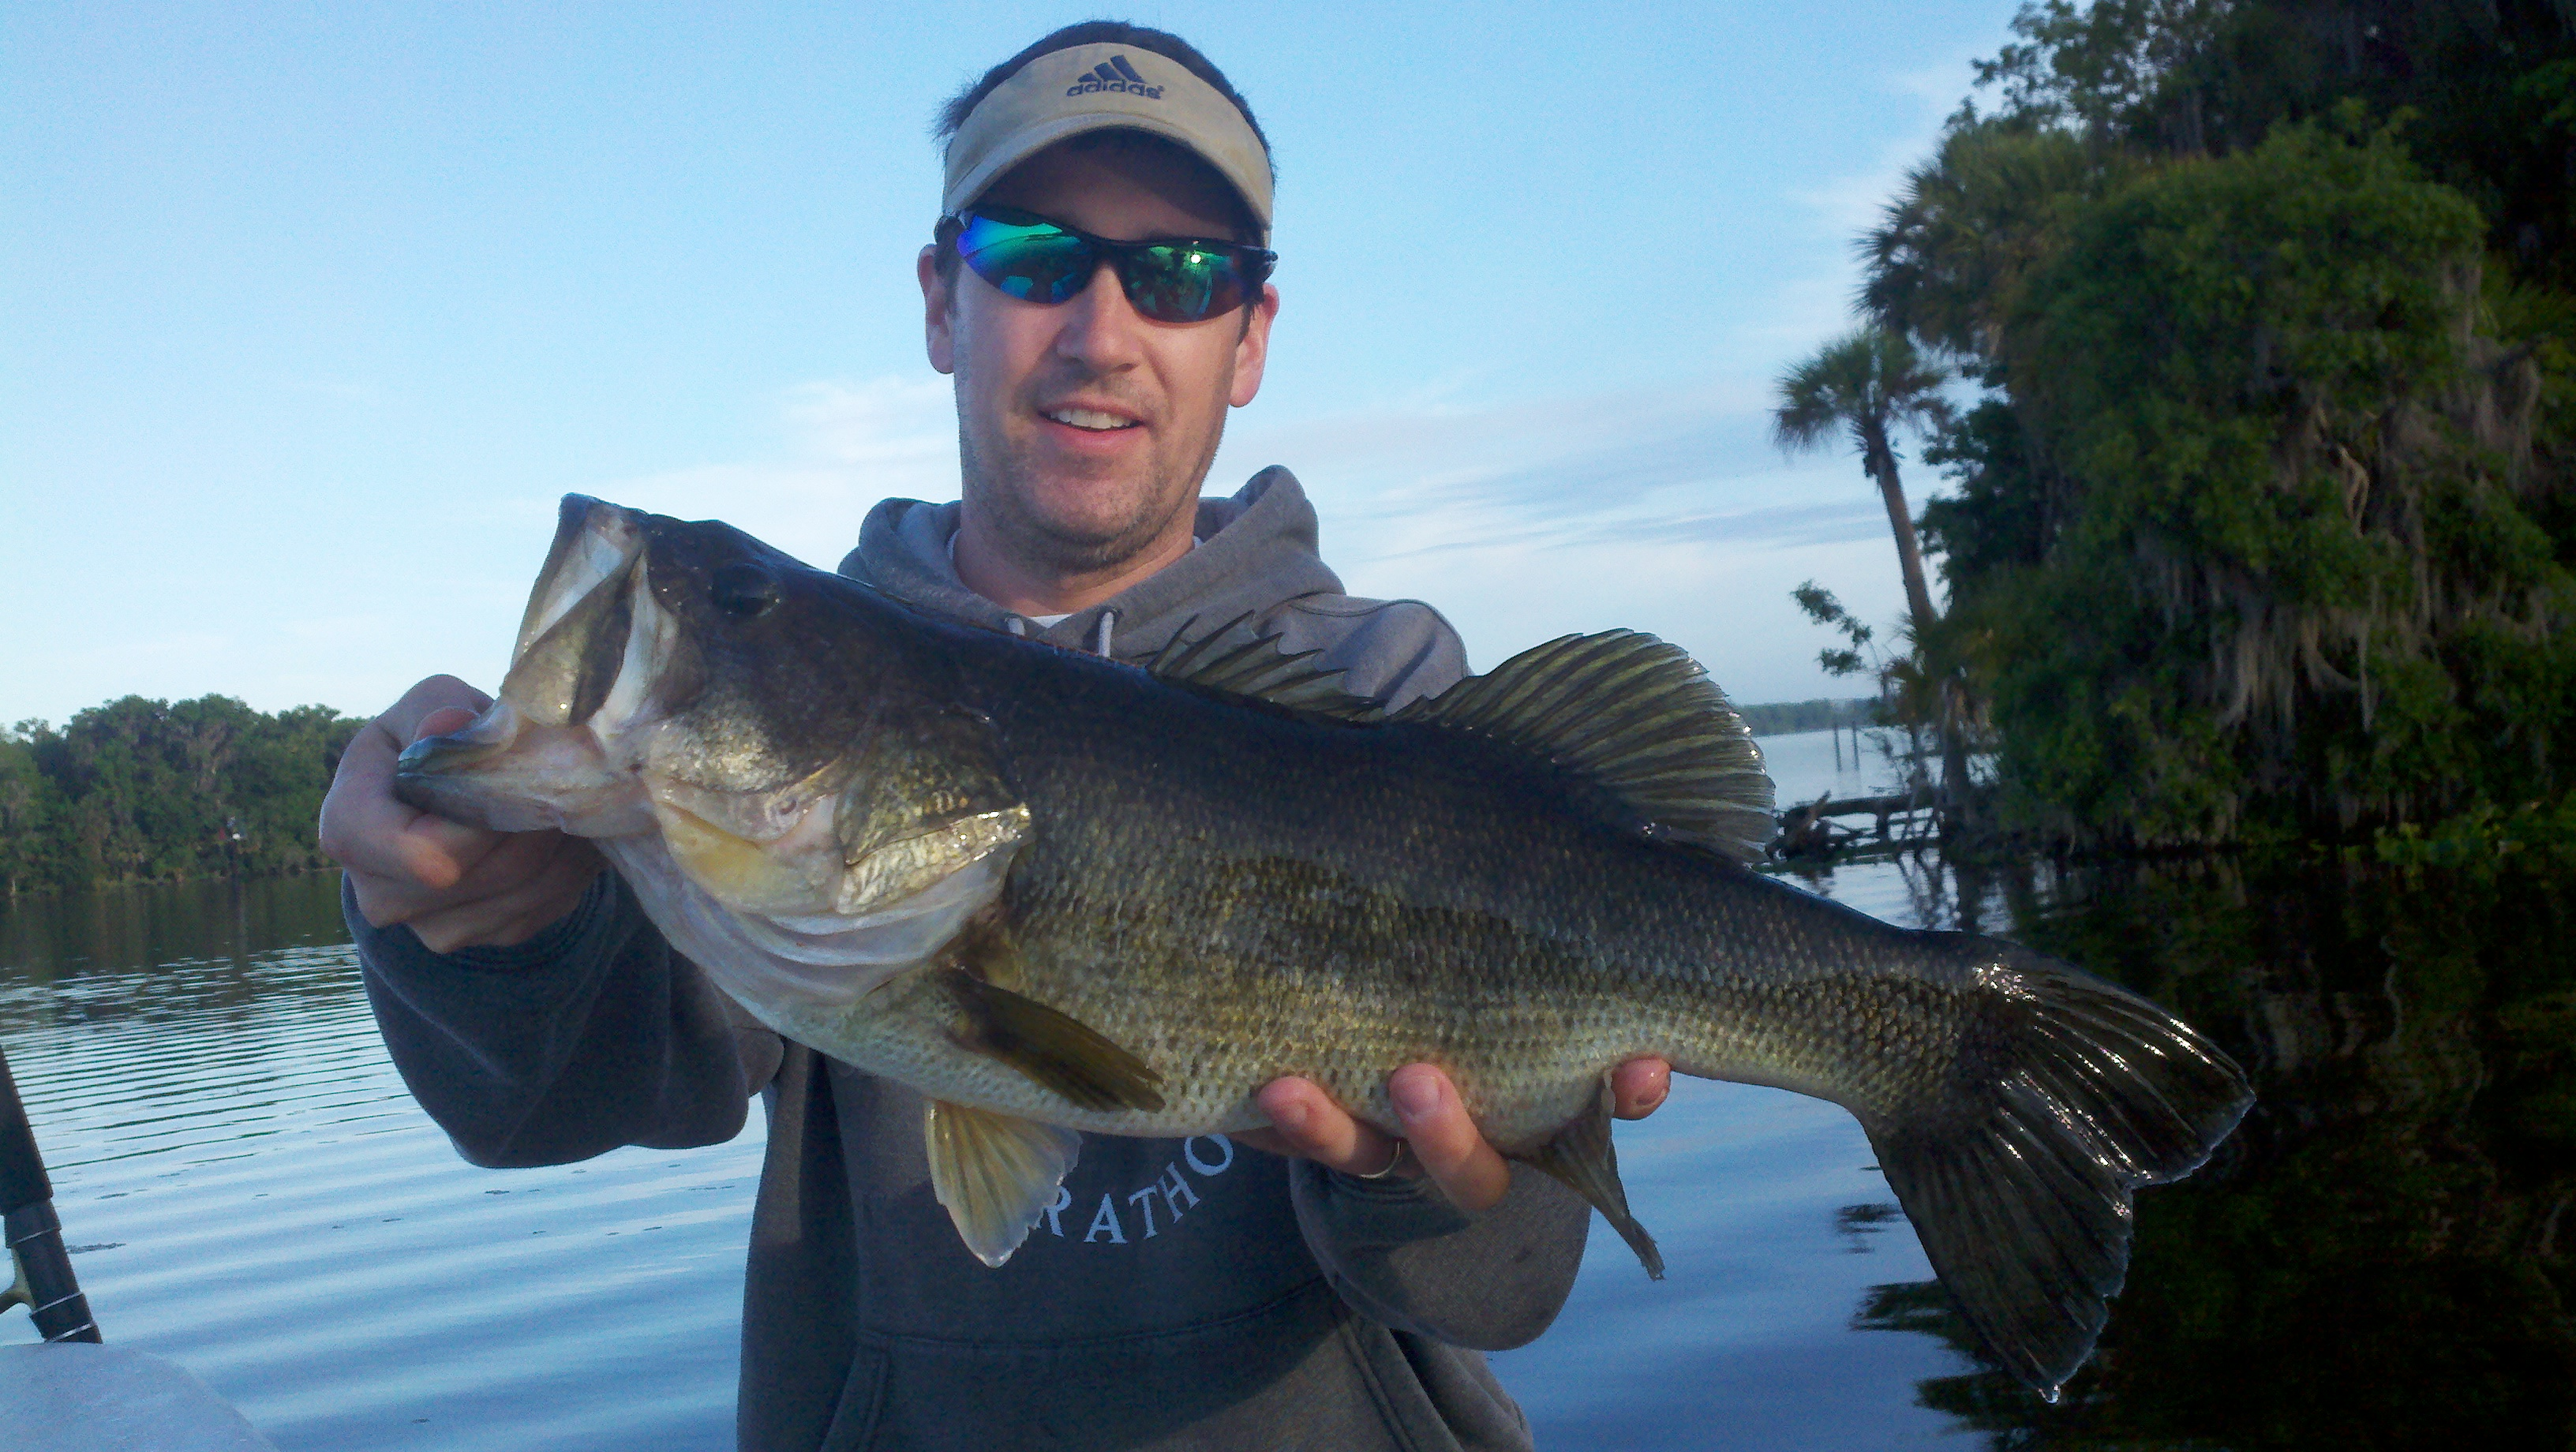 Carl randy and heath bass fishing florida lakes for Best bass fishing in florida